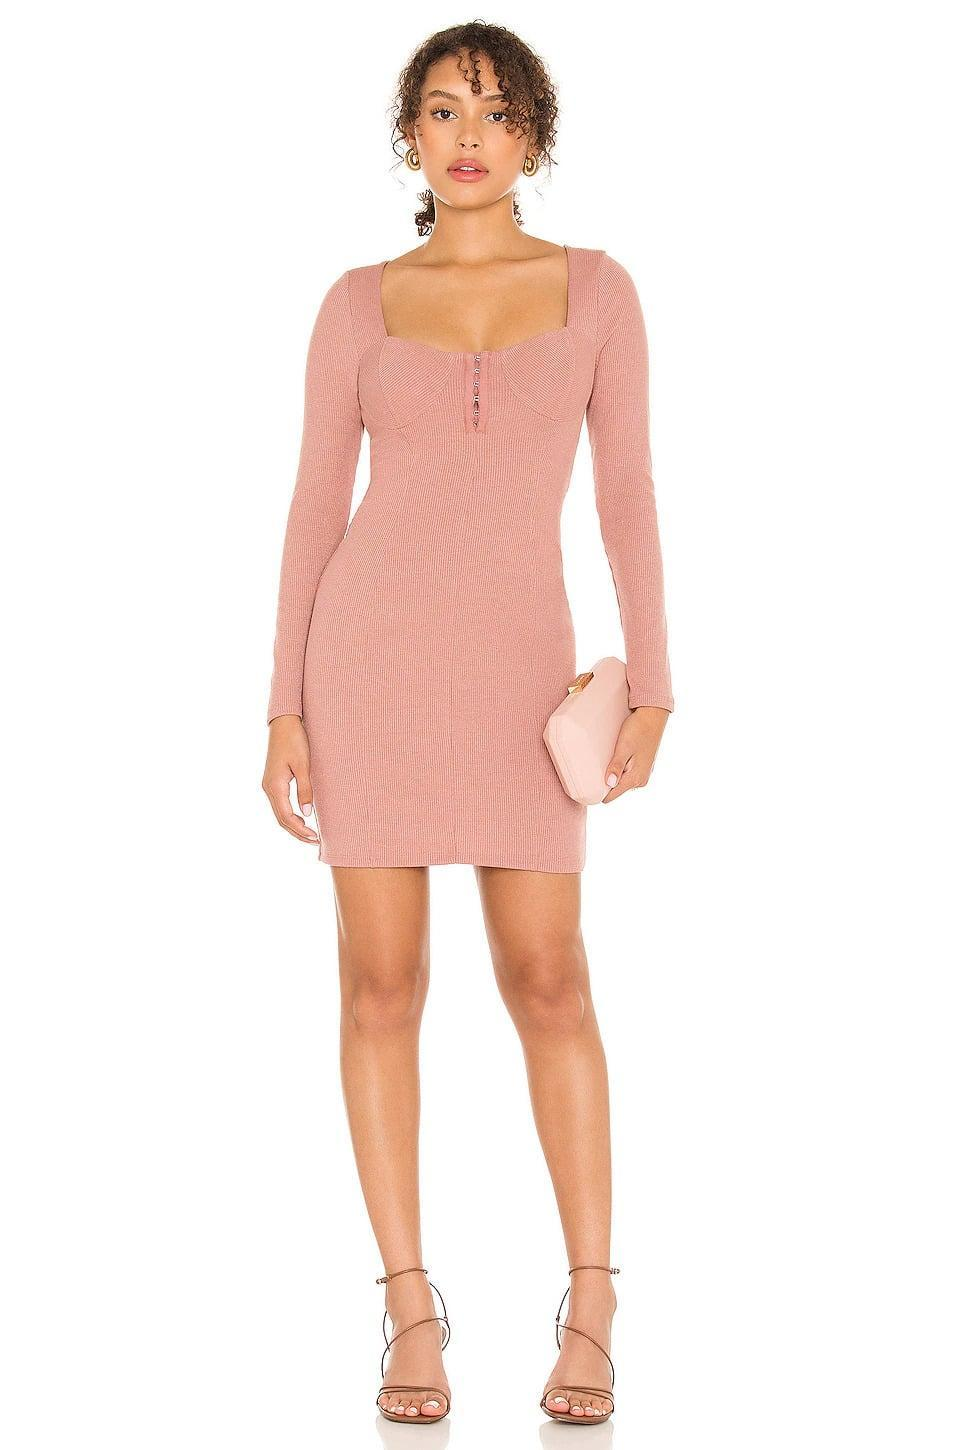 <p>The <span>ASTR the Label Hook &amp; Eye Bodycon Dress</span> ($45, originally $75) has such a flattering neckline that will make you look and feel your best. It also comes in a neutral taupe color. </p>